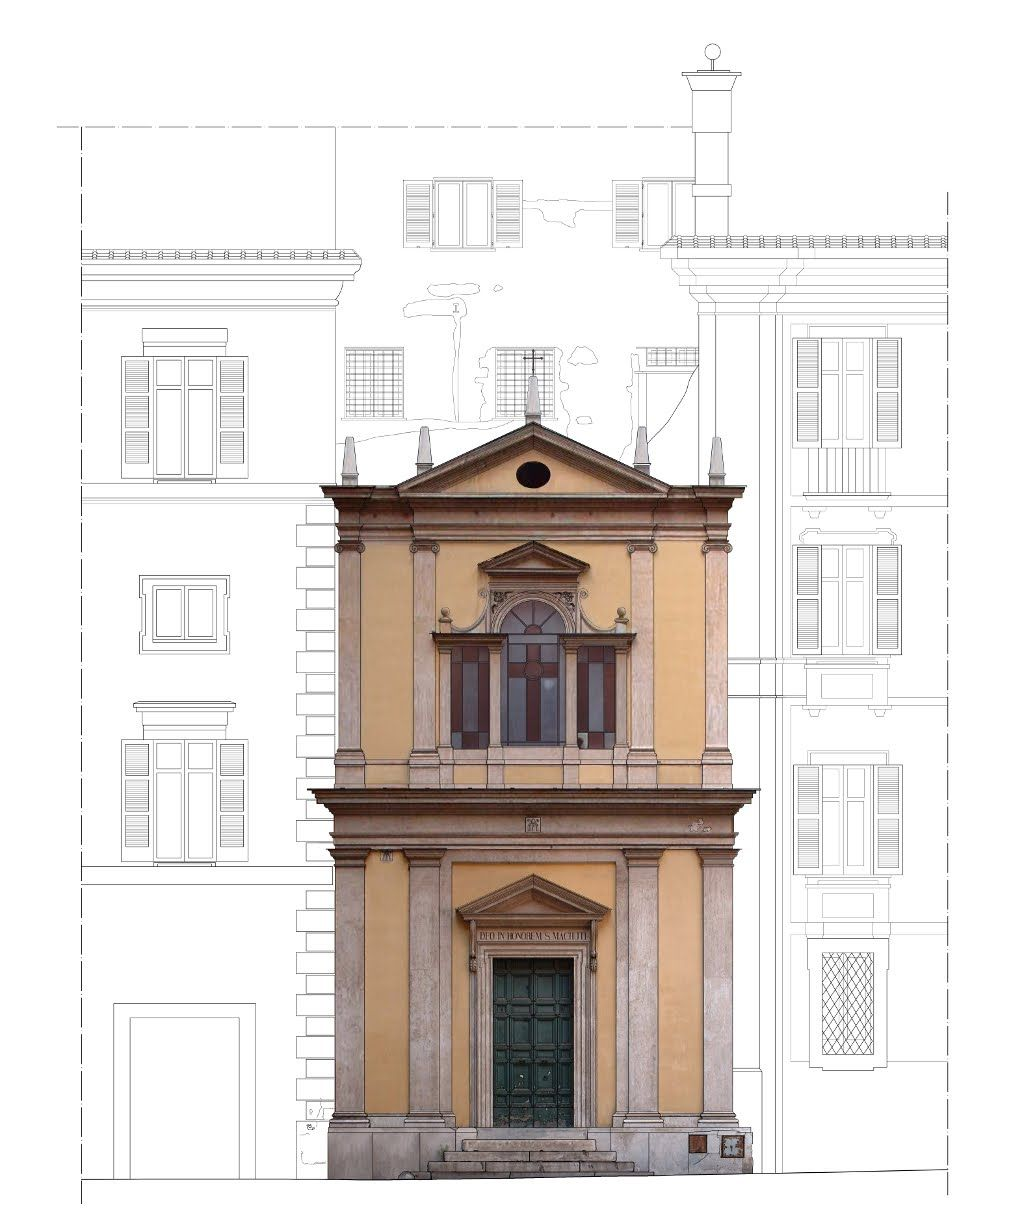 Stefano Bolli Documenting Architectural Facades With A Photogrammetry Software